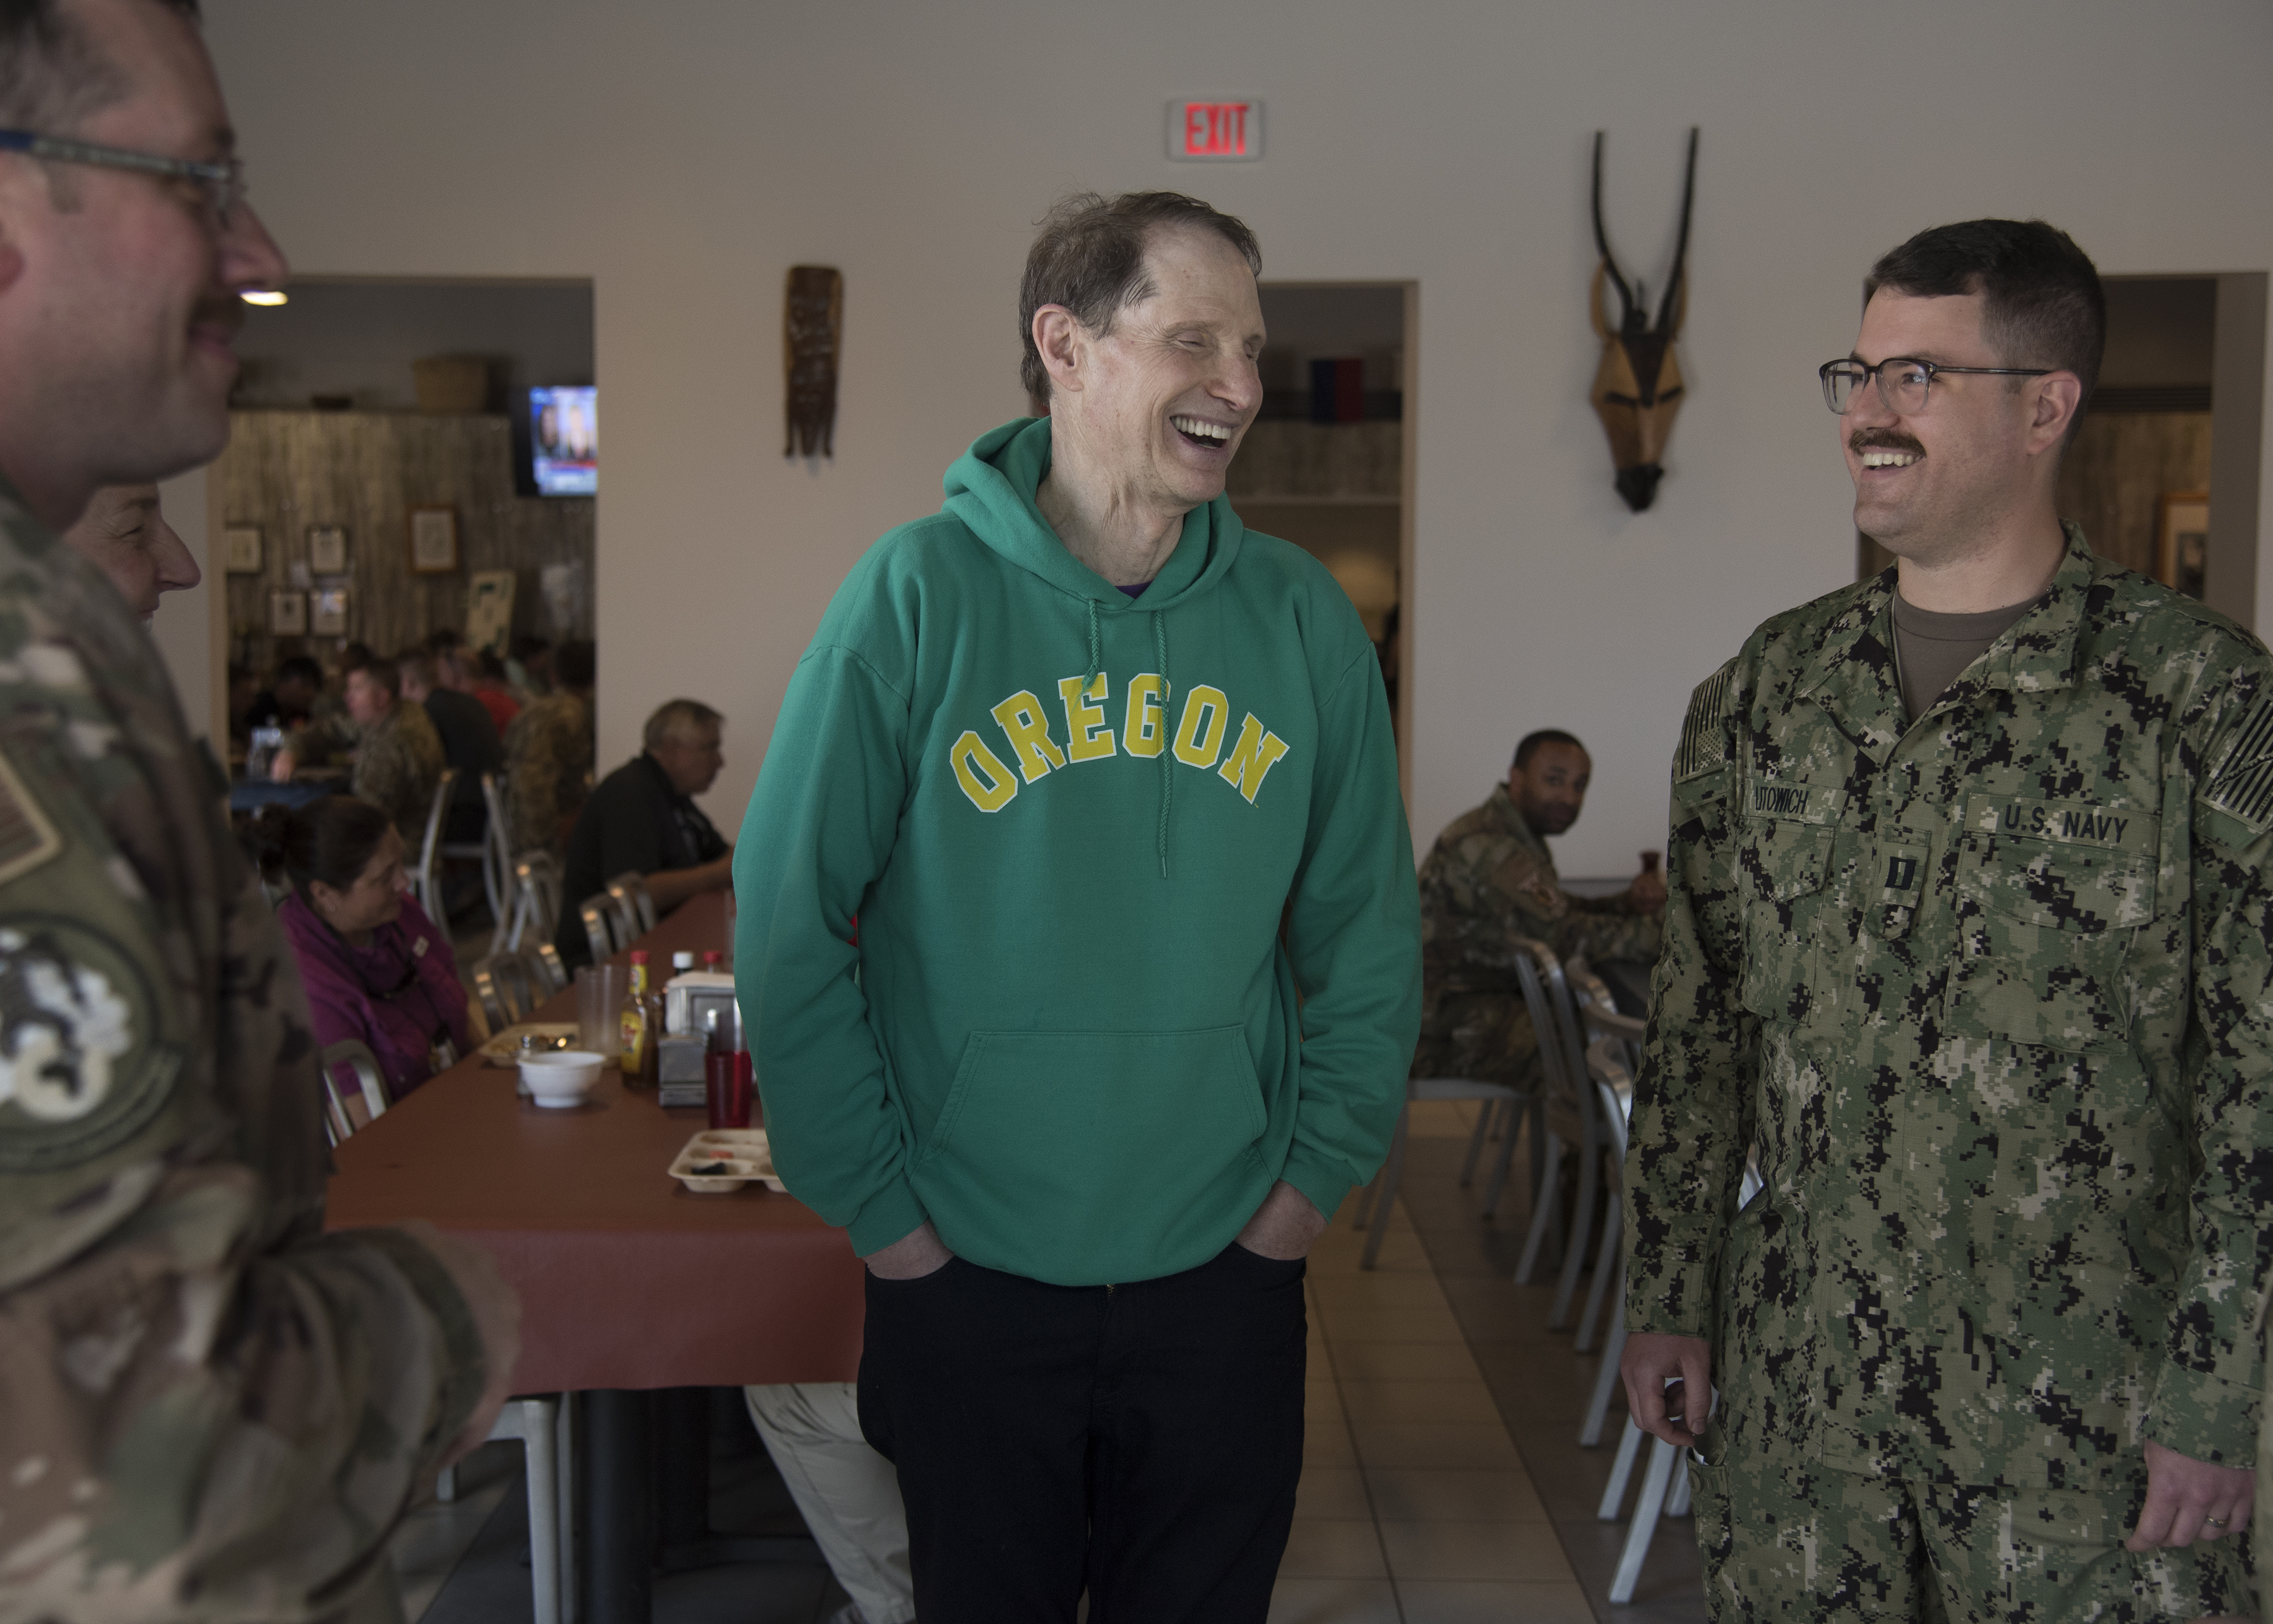 U.S. Sen. Ron Wyden (D-OR) meets with service members from Oregon deployed to Combined Joint Task Force-Horn of Africa (CJTF-HOA), Djibouti, April 26, 2019. Wyden traveled to Djibouti to visit U.S. forces and embassy officials and to meet with national defense leaders to understand the current posture of readiness and security. (U.S. Air Force photo by Senior Airman Kirsten Brandes)